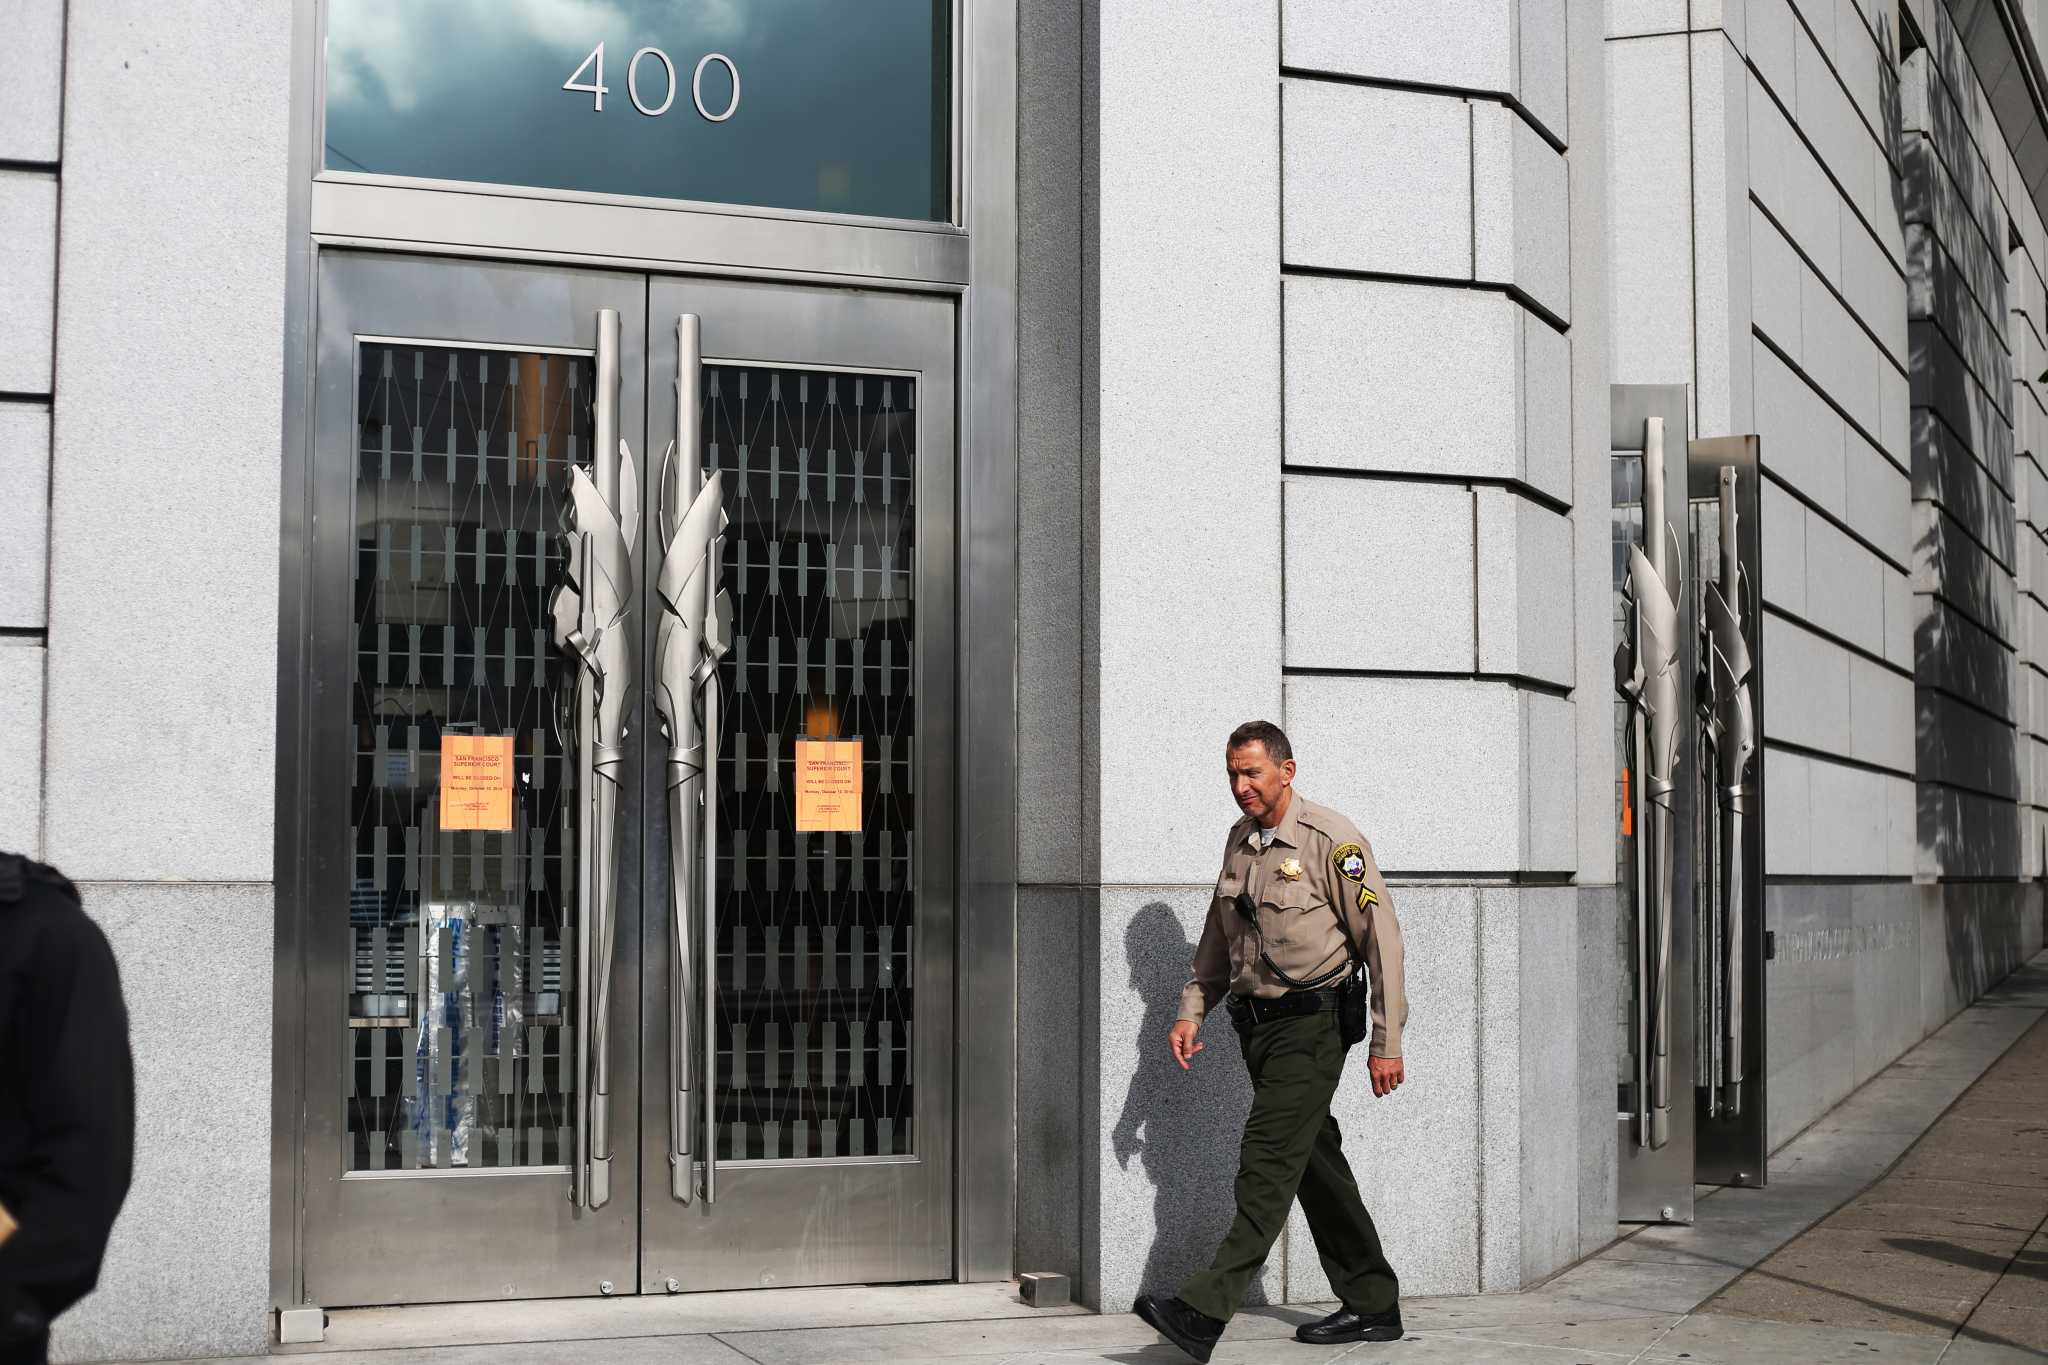 A suit against SF State concluded on Friday at San Francisco Superior Court, finding the University guilty of retaliatory action against a former employee.